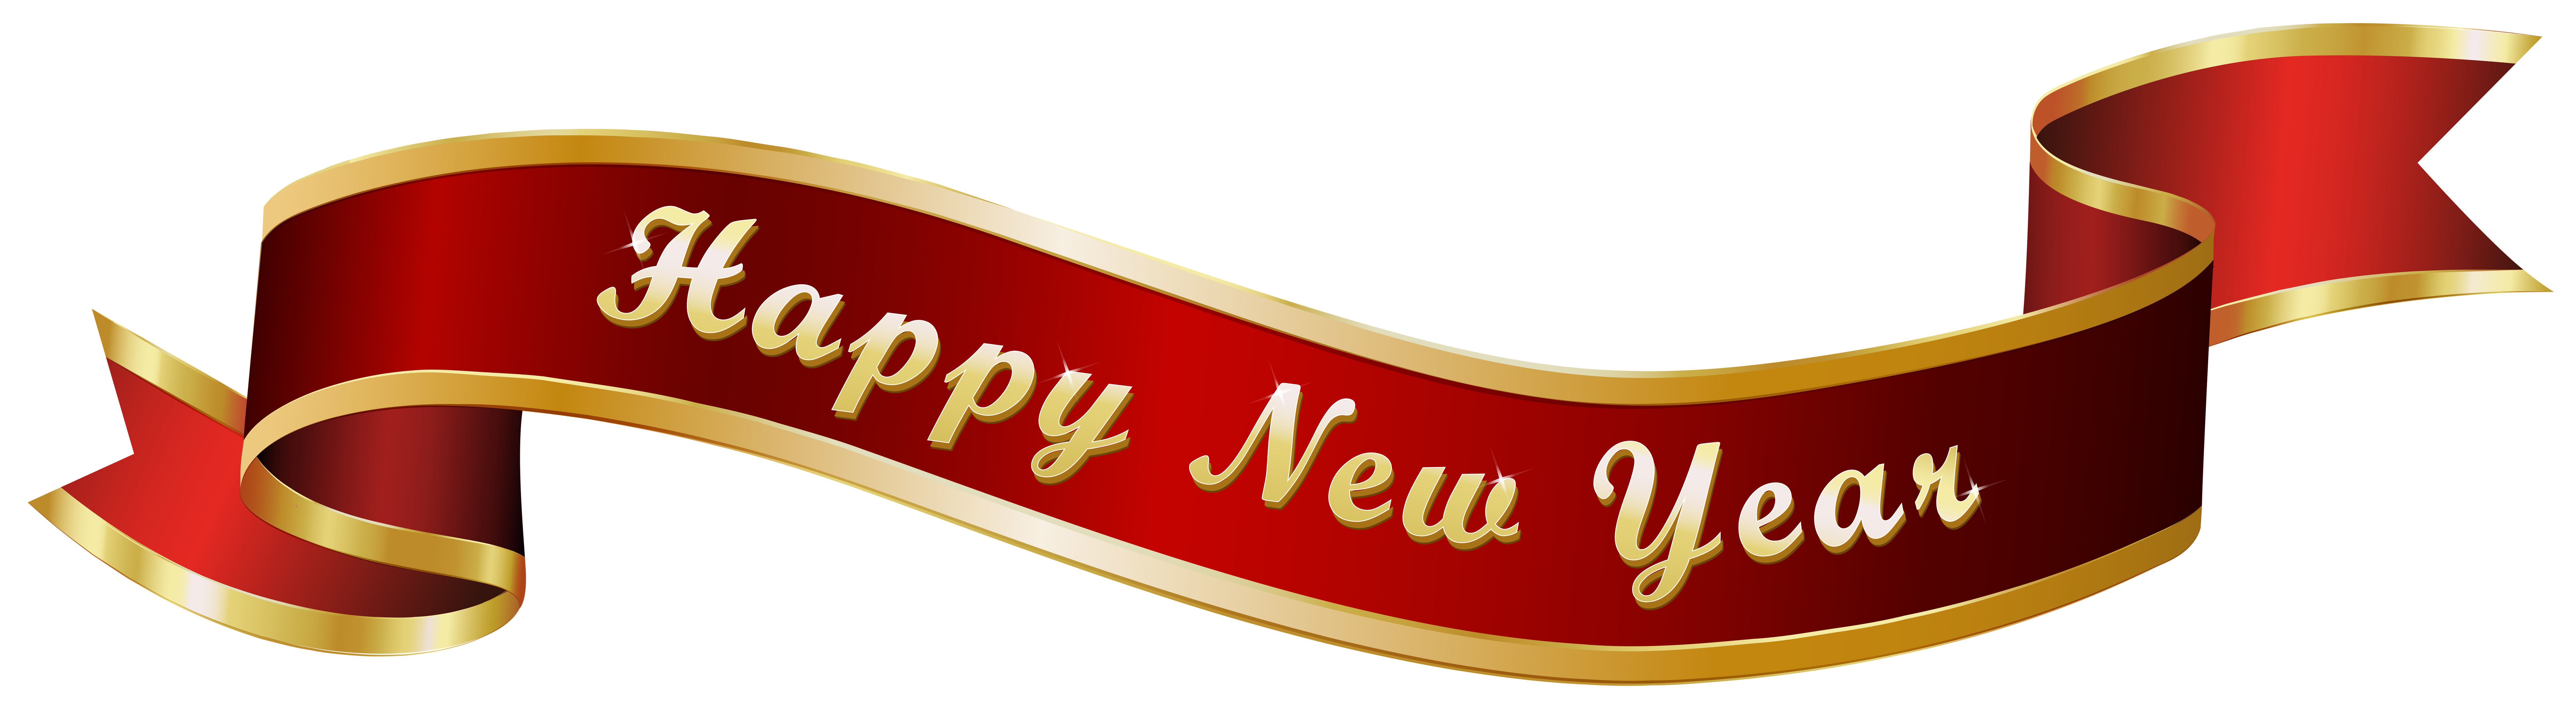 Happy new year 2017 png. Fast lunchrock co